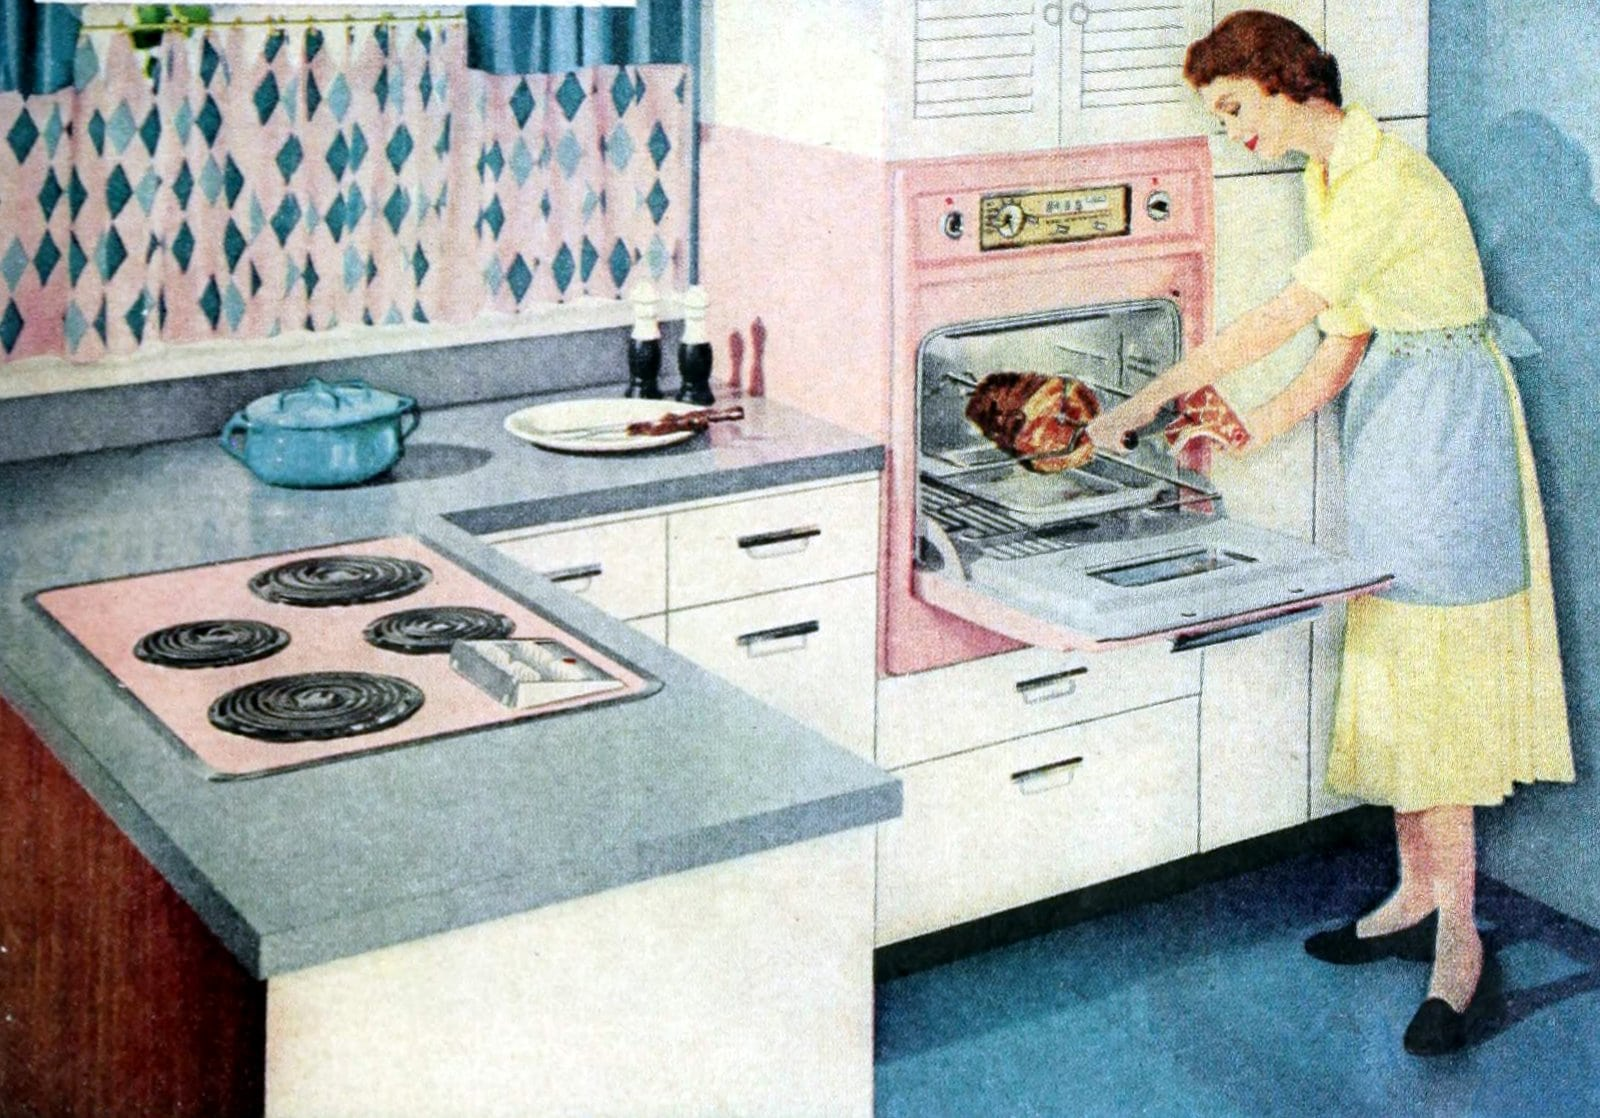 Vintage 50s kitchen with blue decor and pink appliances (1958)